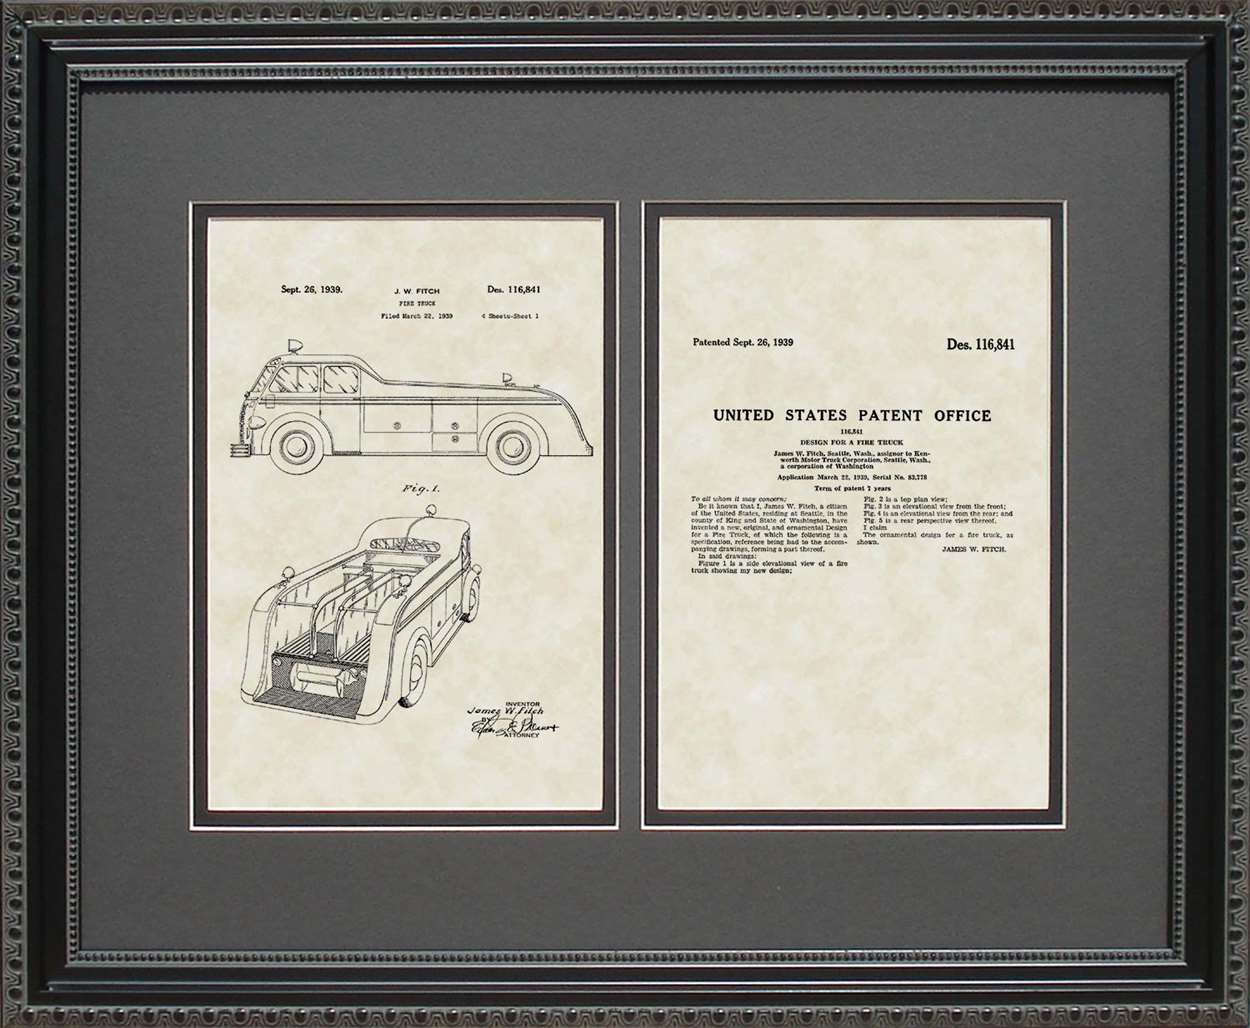 Fire Truck Patent, Art & Copy, Fitch, 1939, 16x20